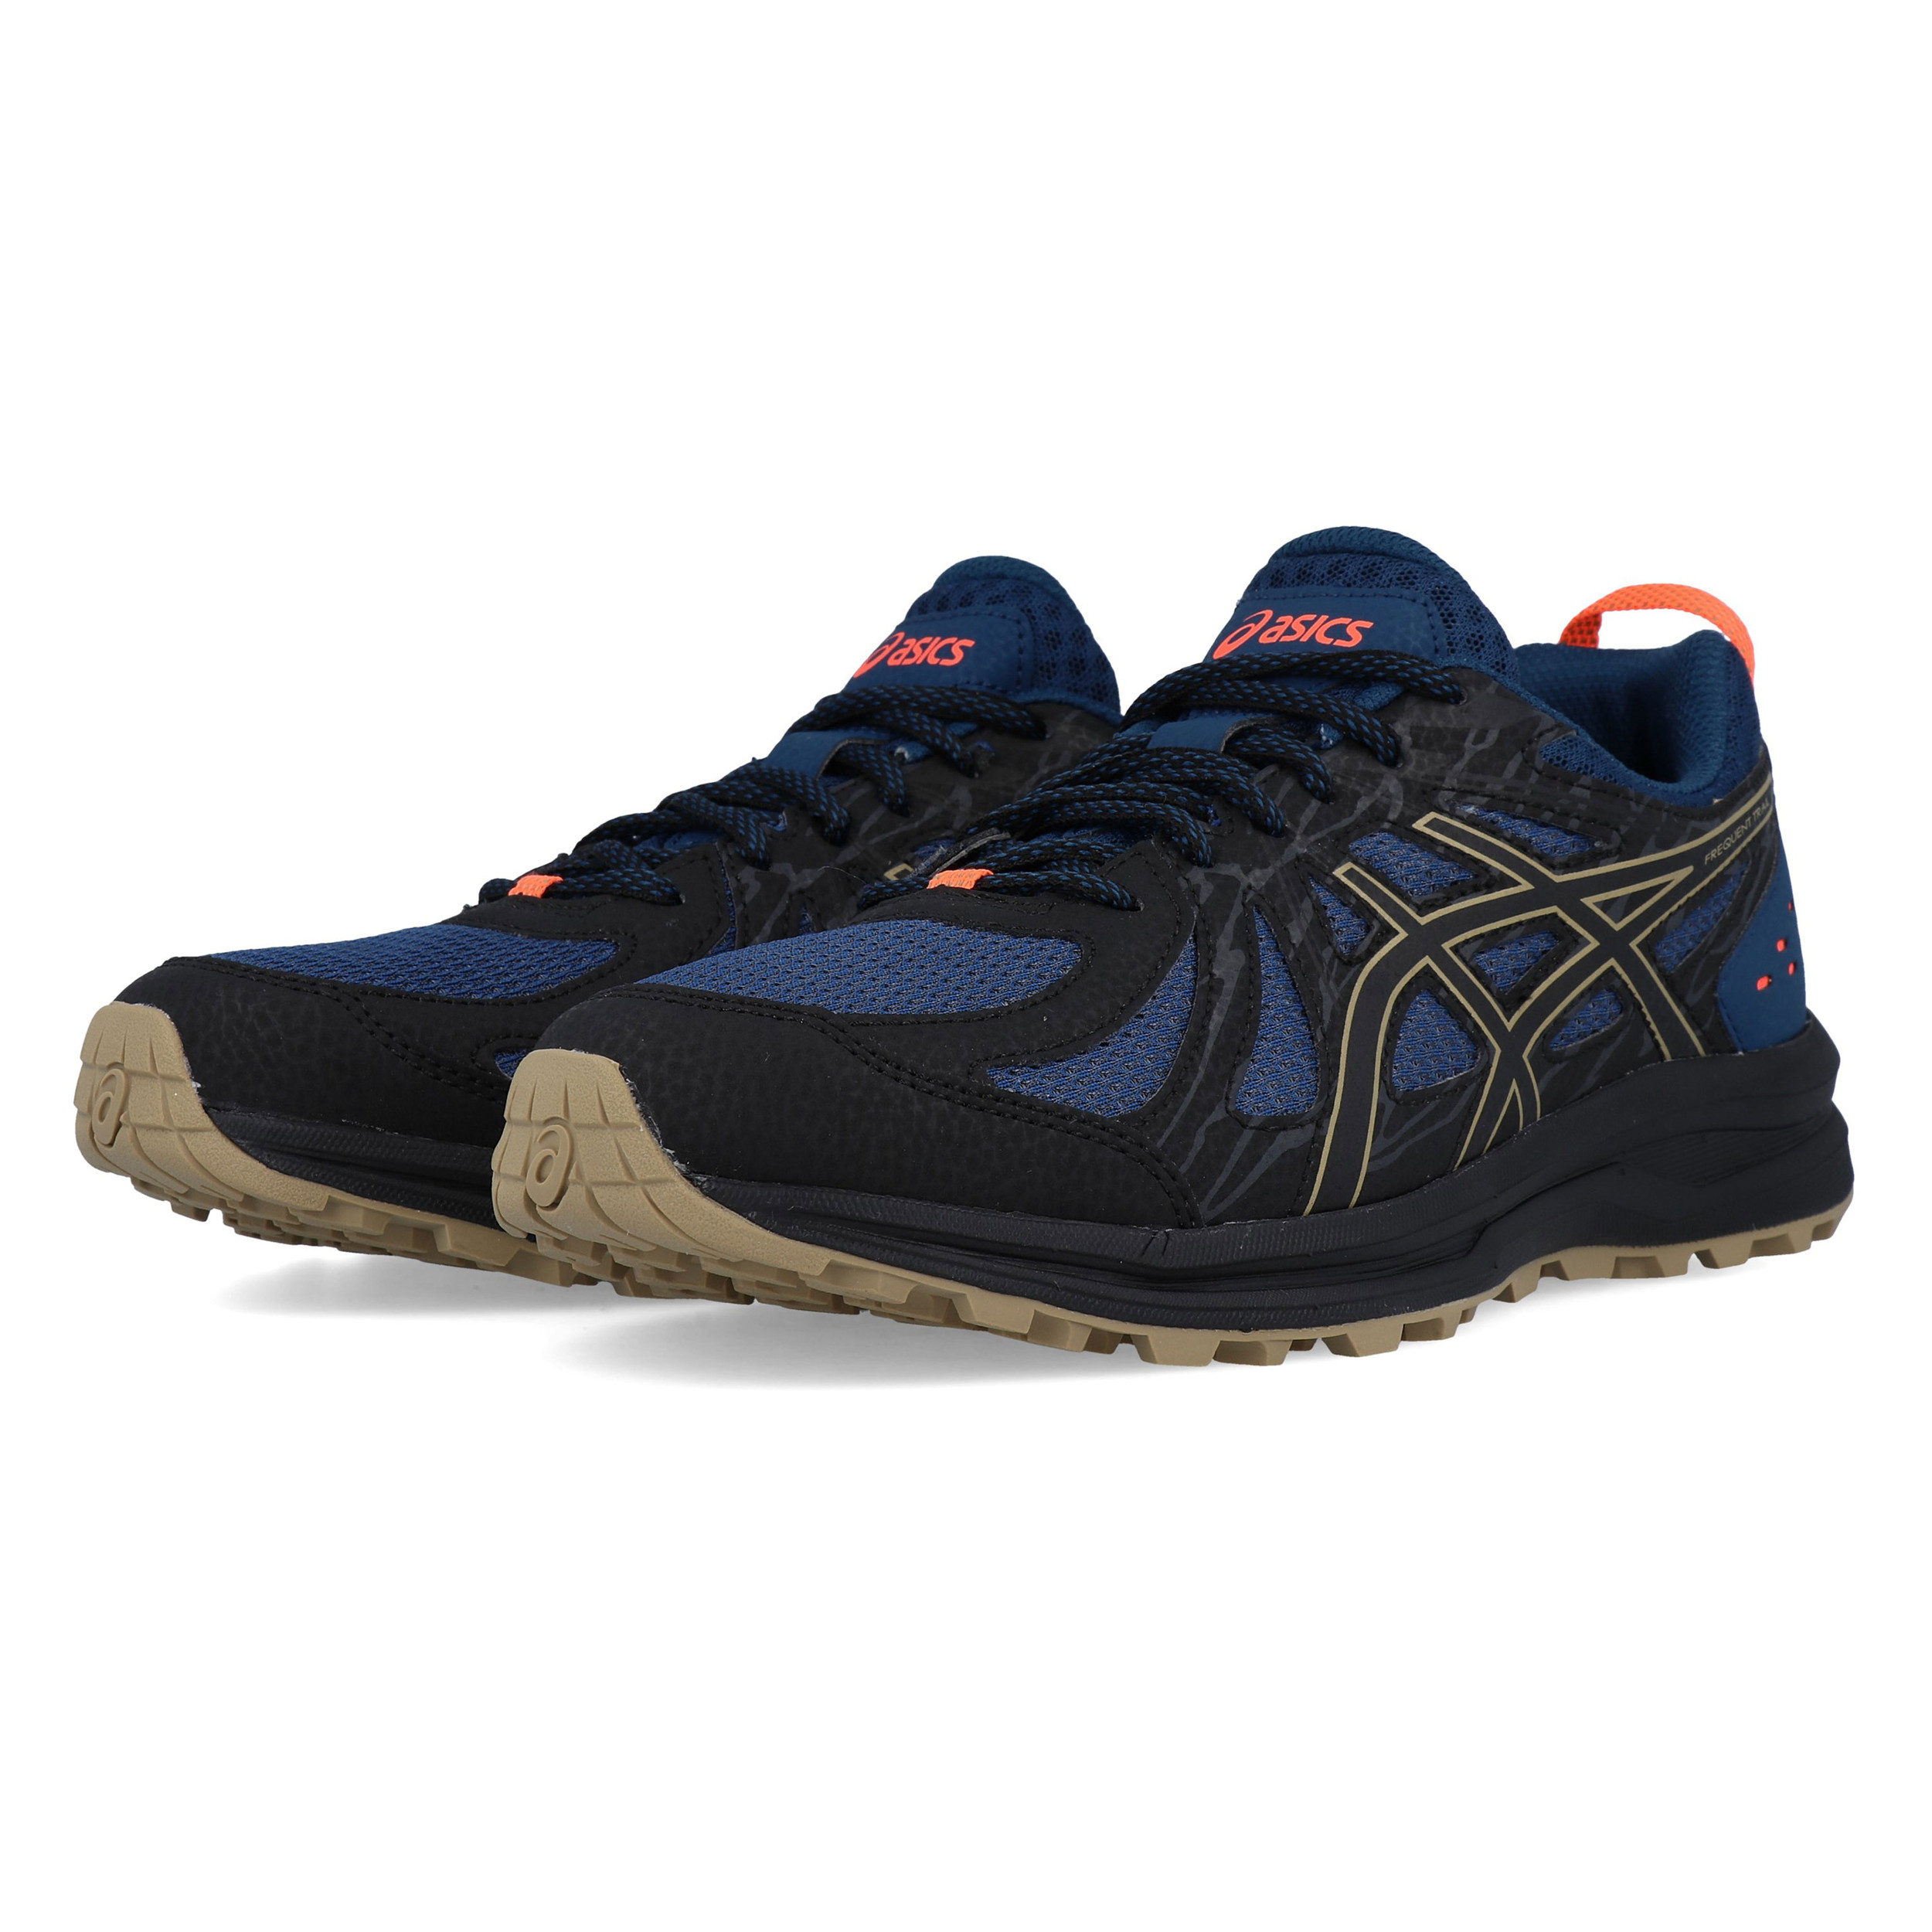 Details about Asics Mens Frequent Trail Running Shoes Trainers Navy Blue Sports Breathable